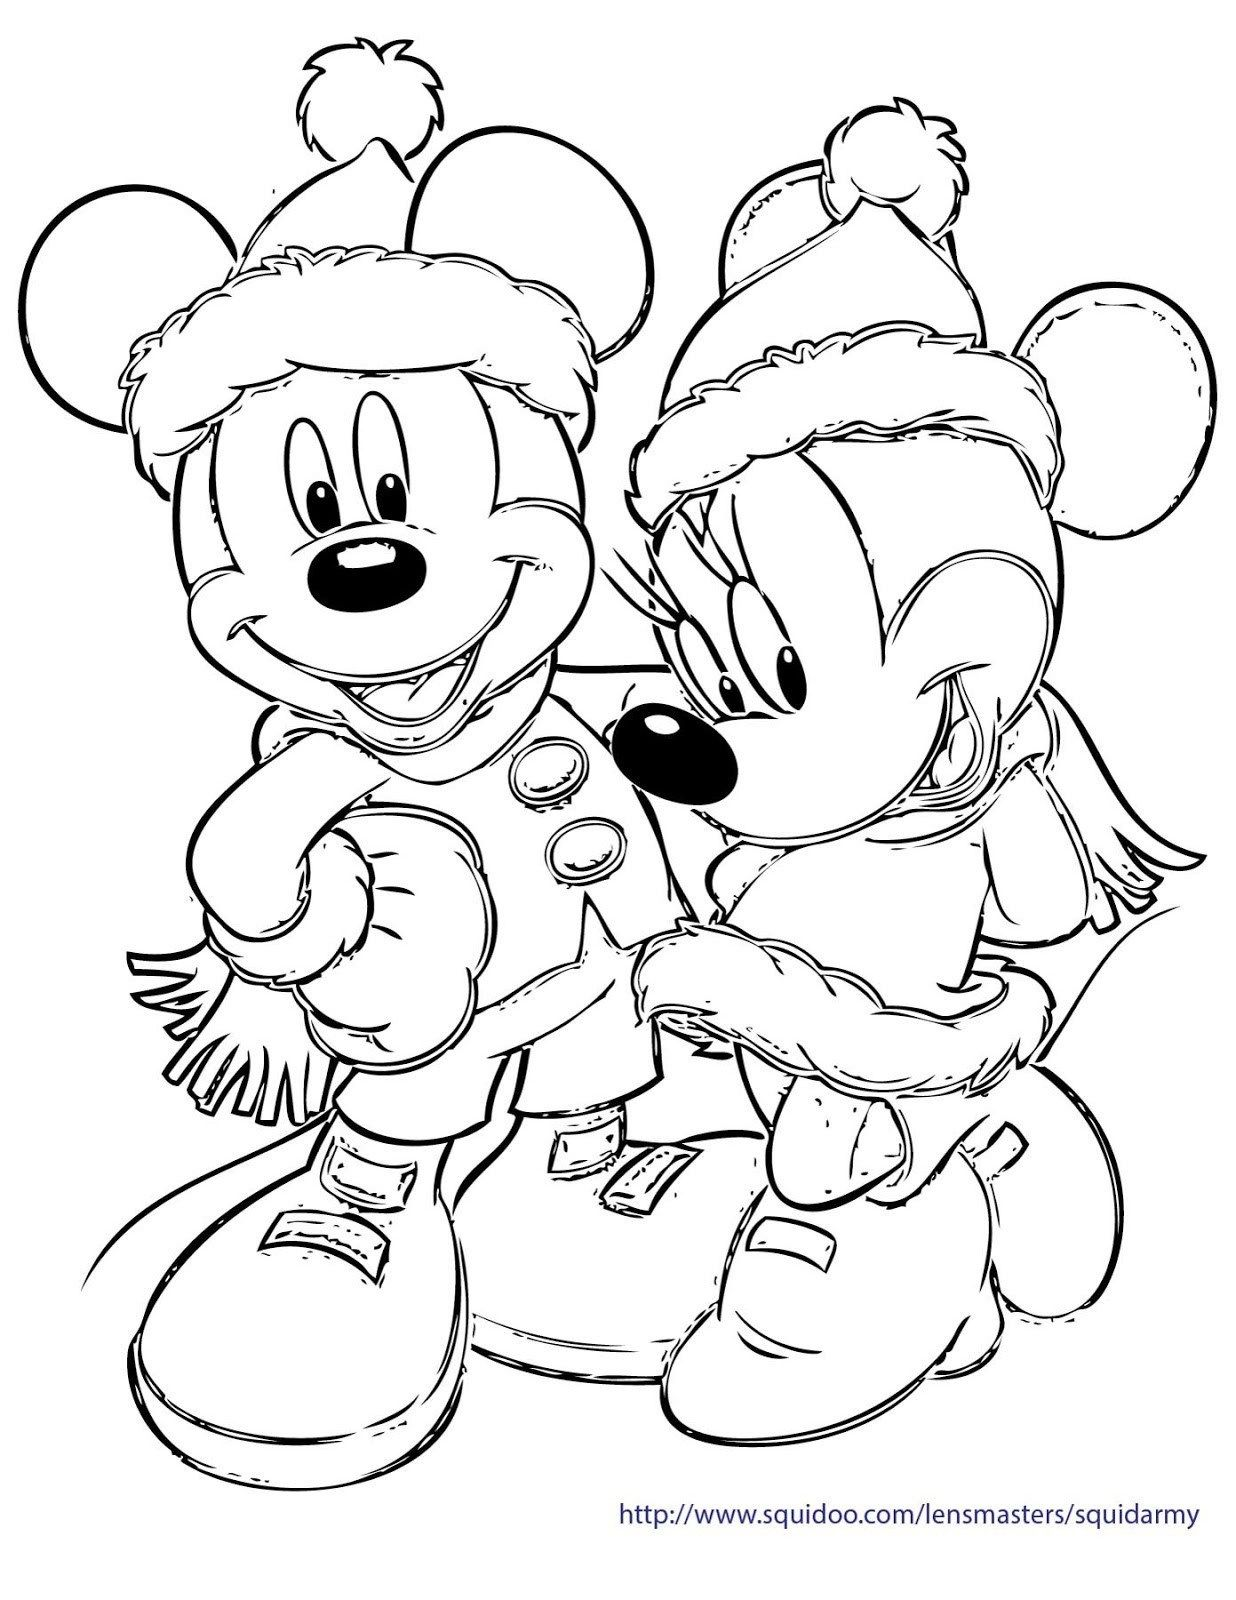 Mickey And Minnie Coloring Pages Mickey Minnie Christmas Coloring Page With Mouse Pages Coloring Pages Davemelillo Com Free Christmas Coloring Pages Kids Christmas Coloring Pages Disney Coloring Pages